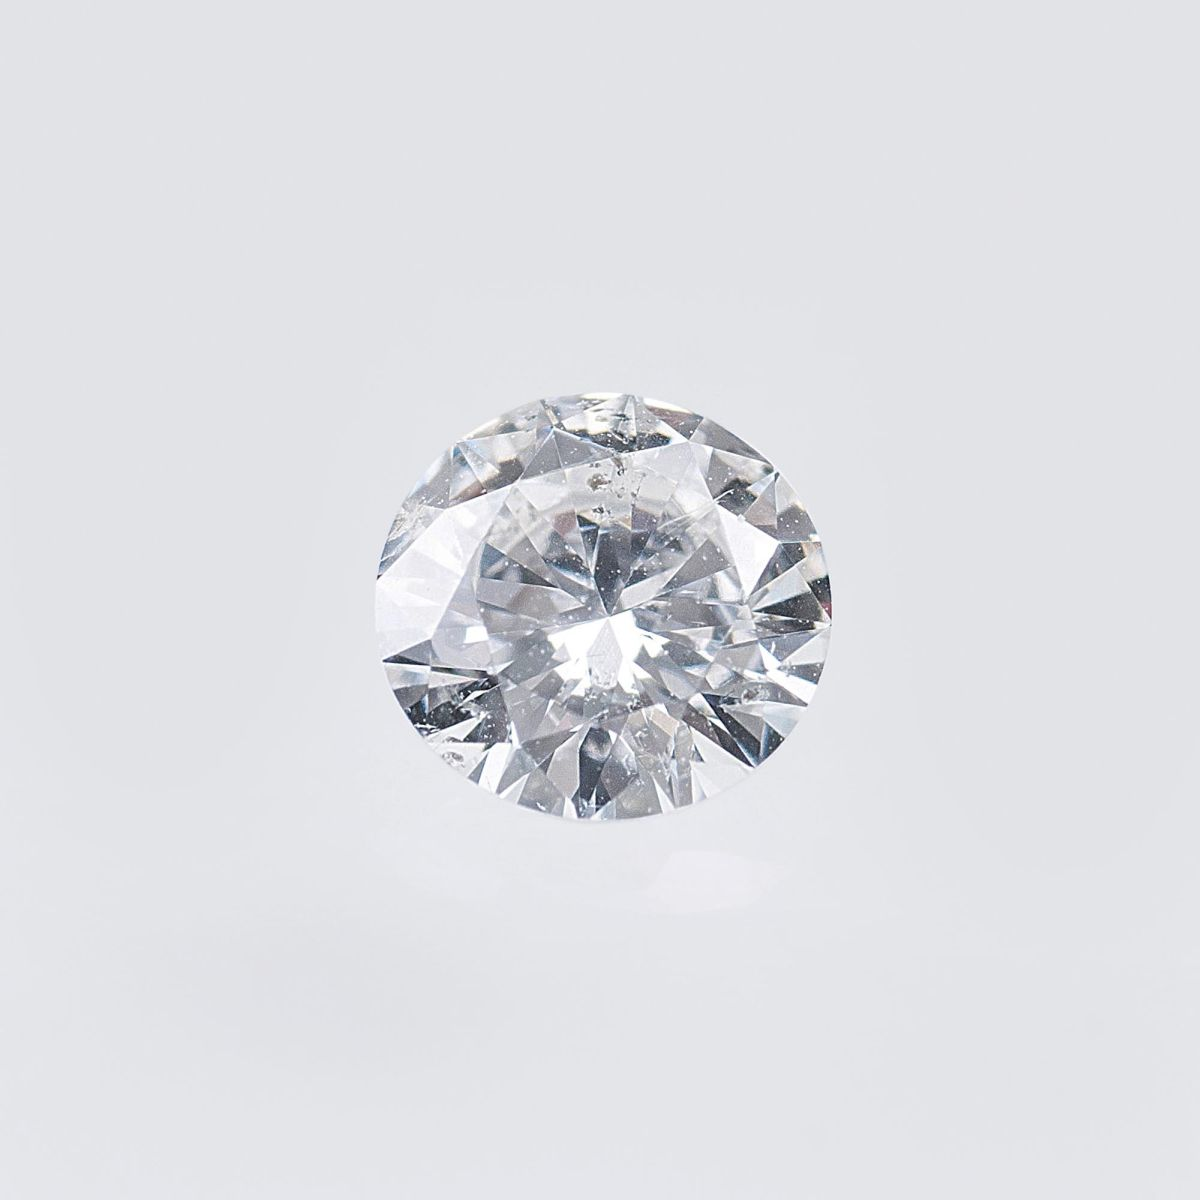 A loose Diamond